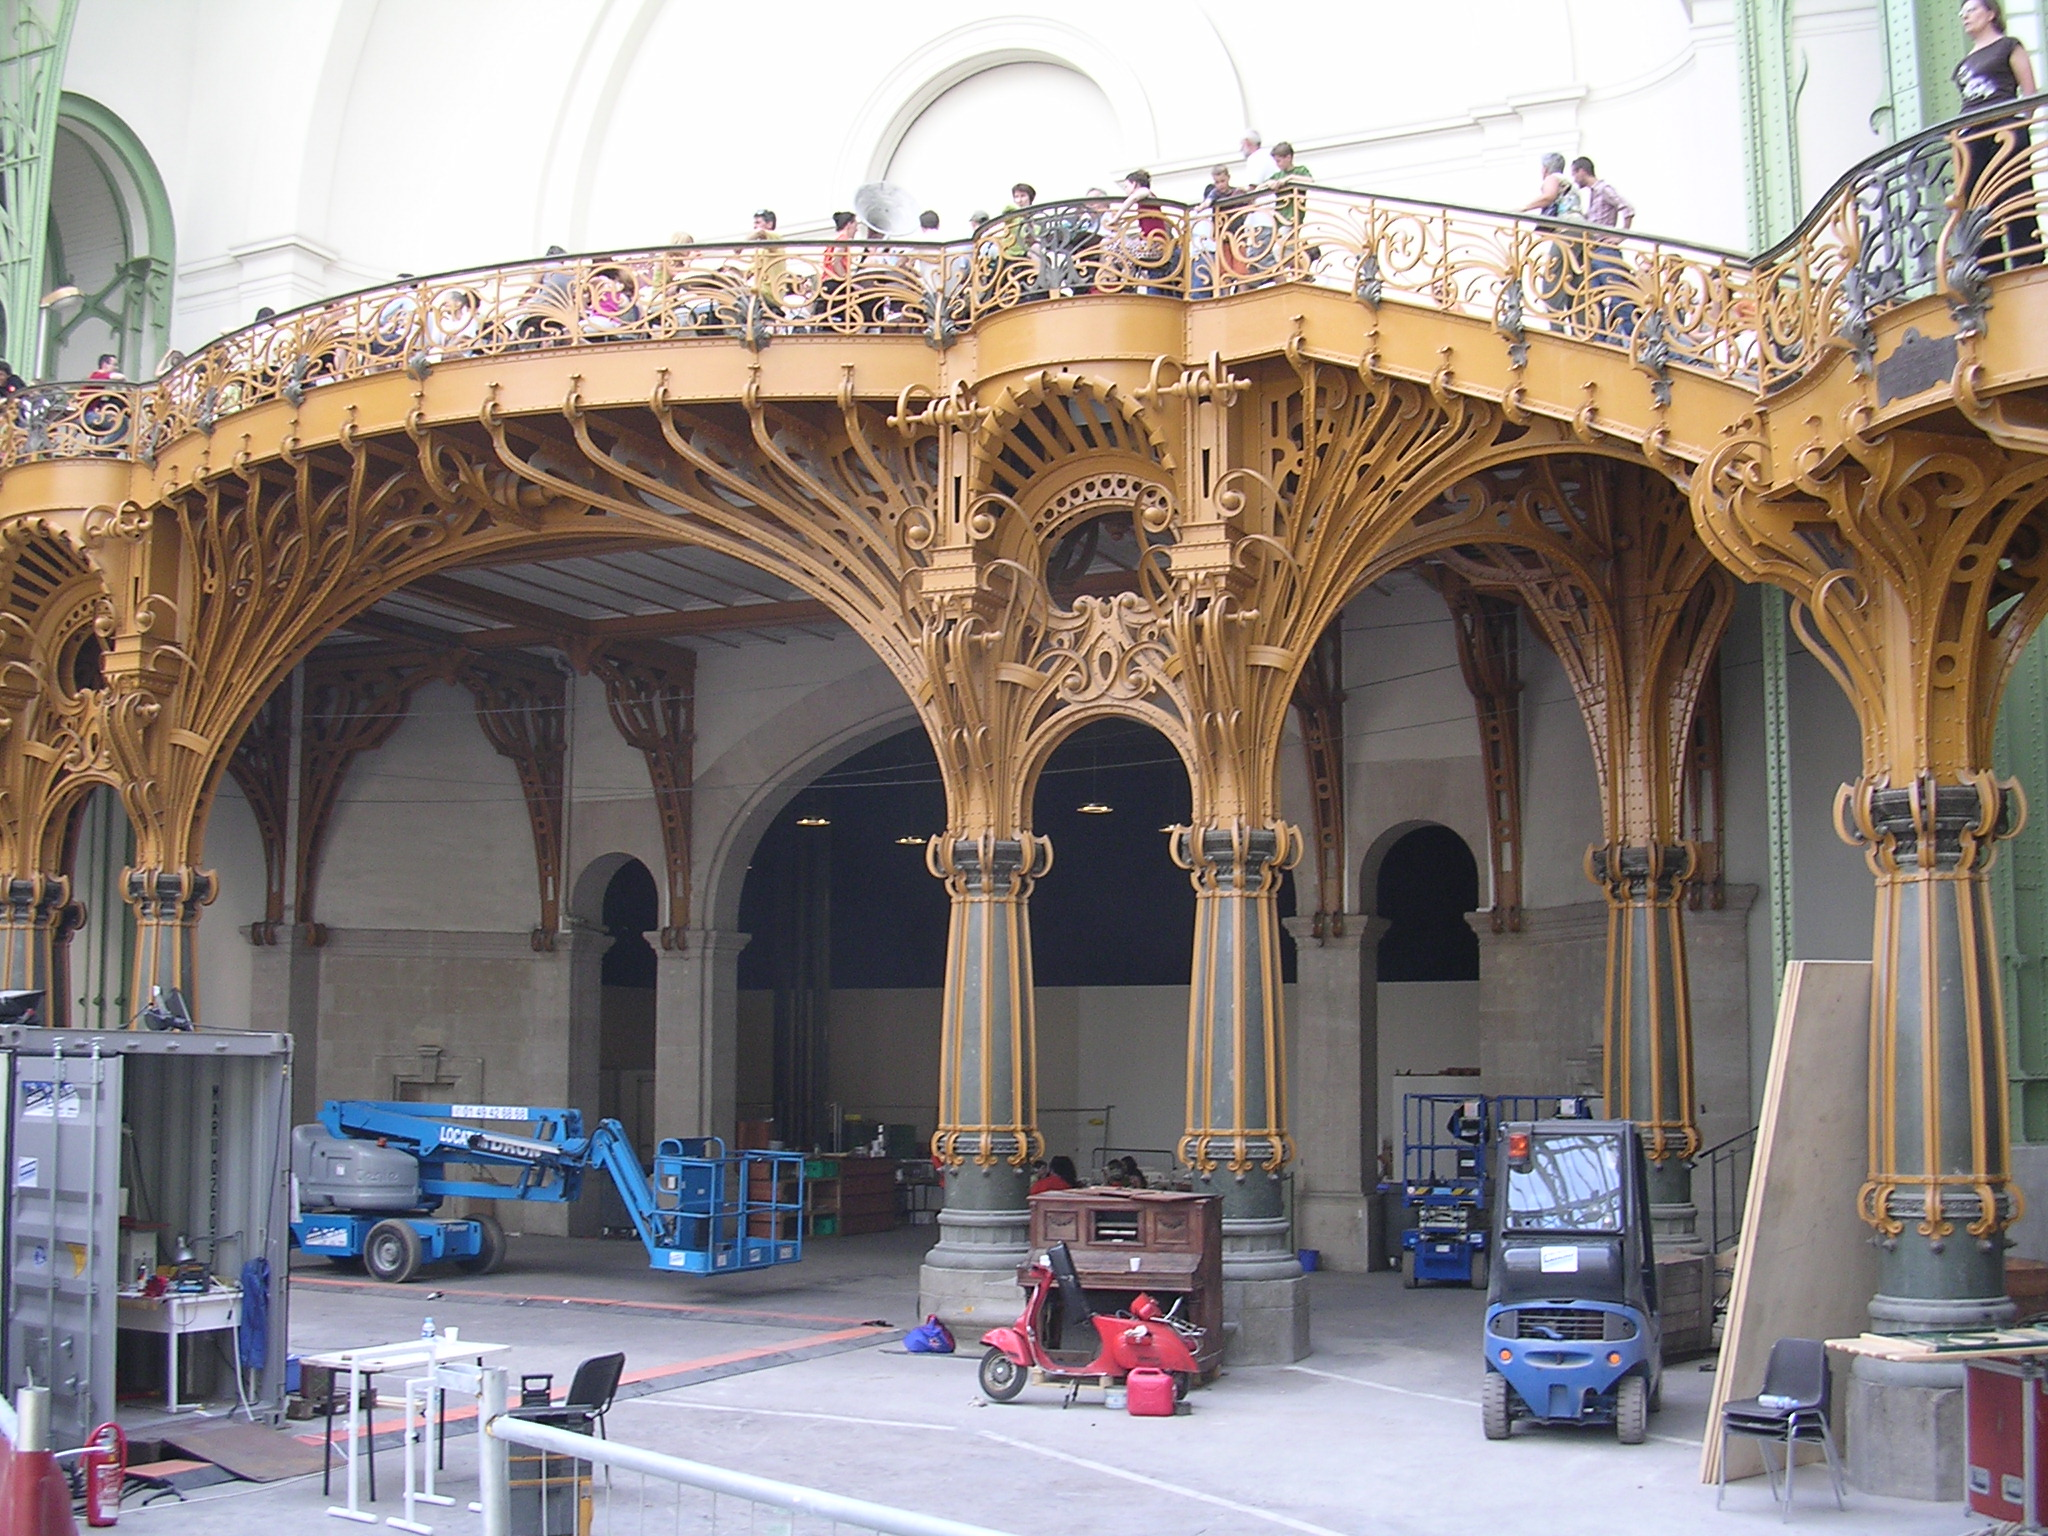 http://upload.wikimedia.org/wikipedia/commons/9/9a/Grand_Palais_balcon_1.JPG